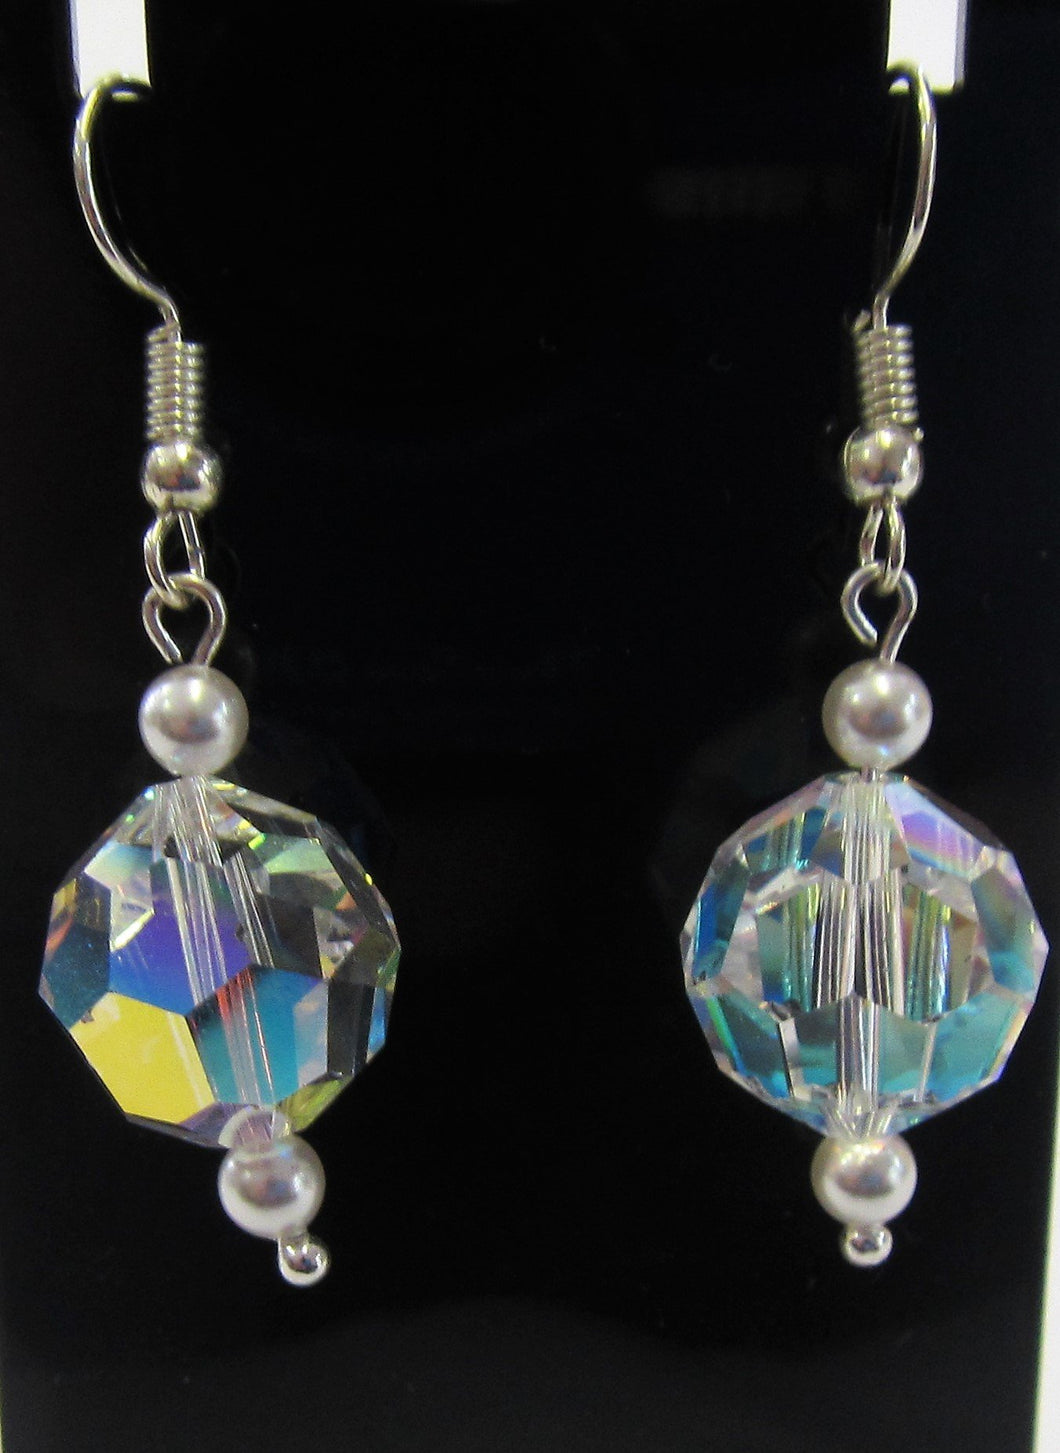 Beautiful handcrafted swarovski crystal earrings